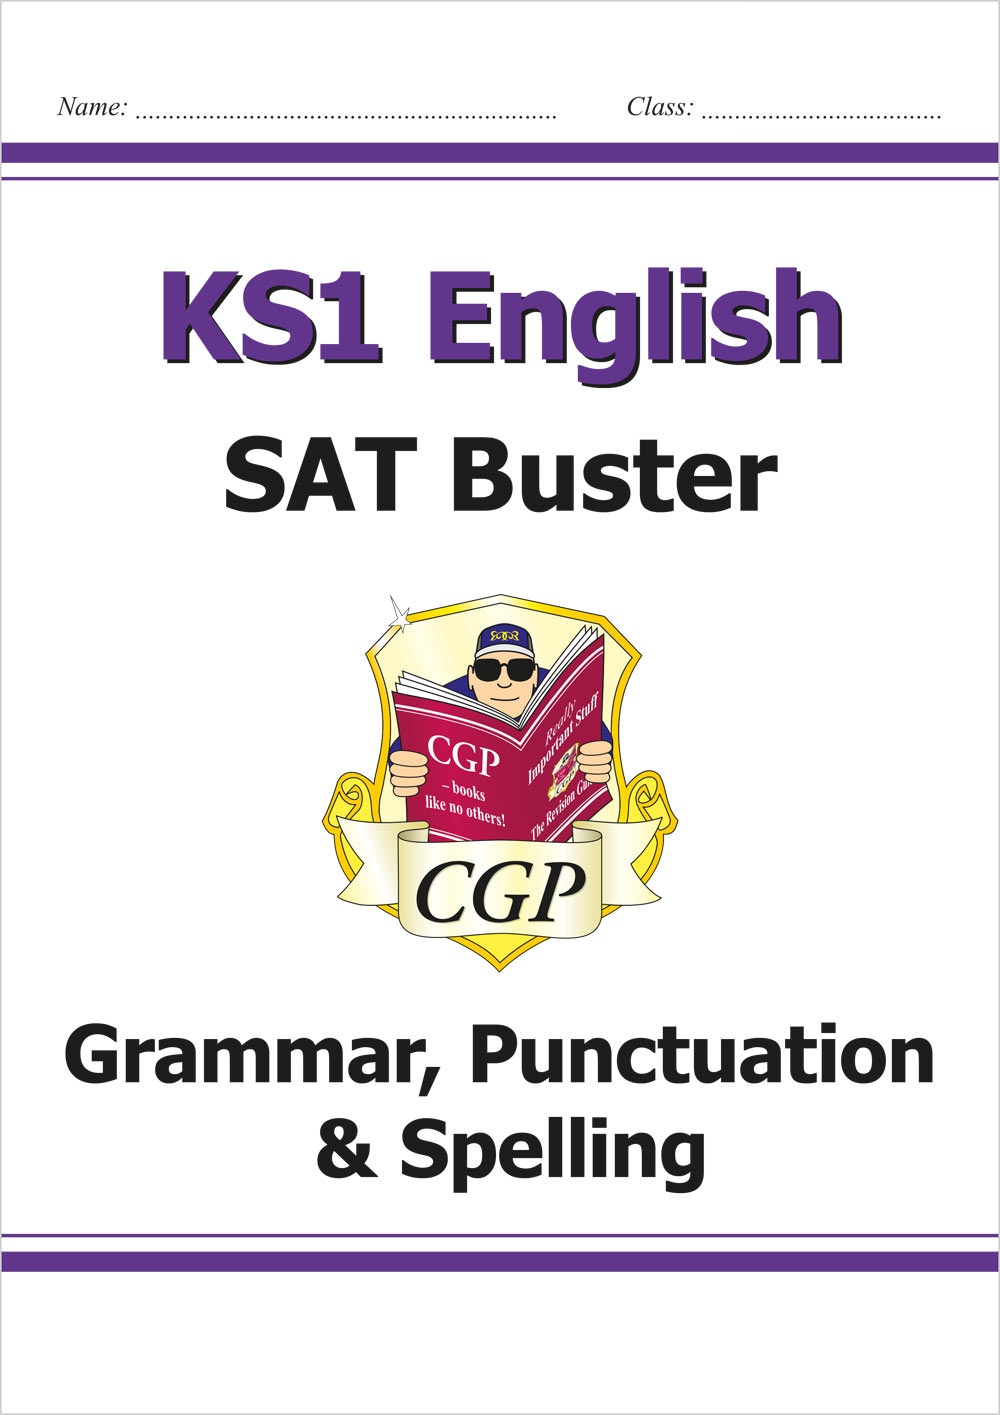 E2G11 - KS1 English SAT Buster: Grammar, Punctuation & Spelling (for the 2021 tests)